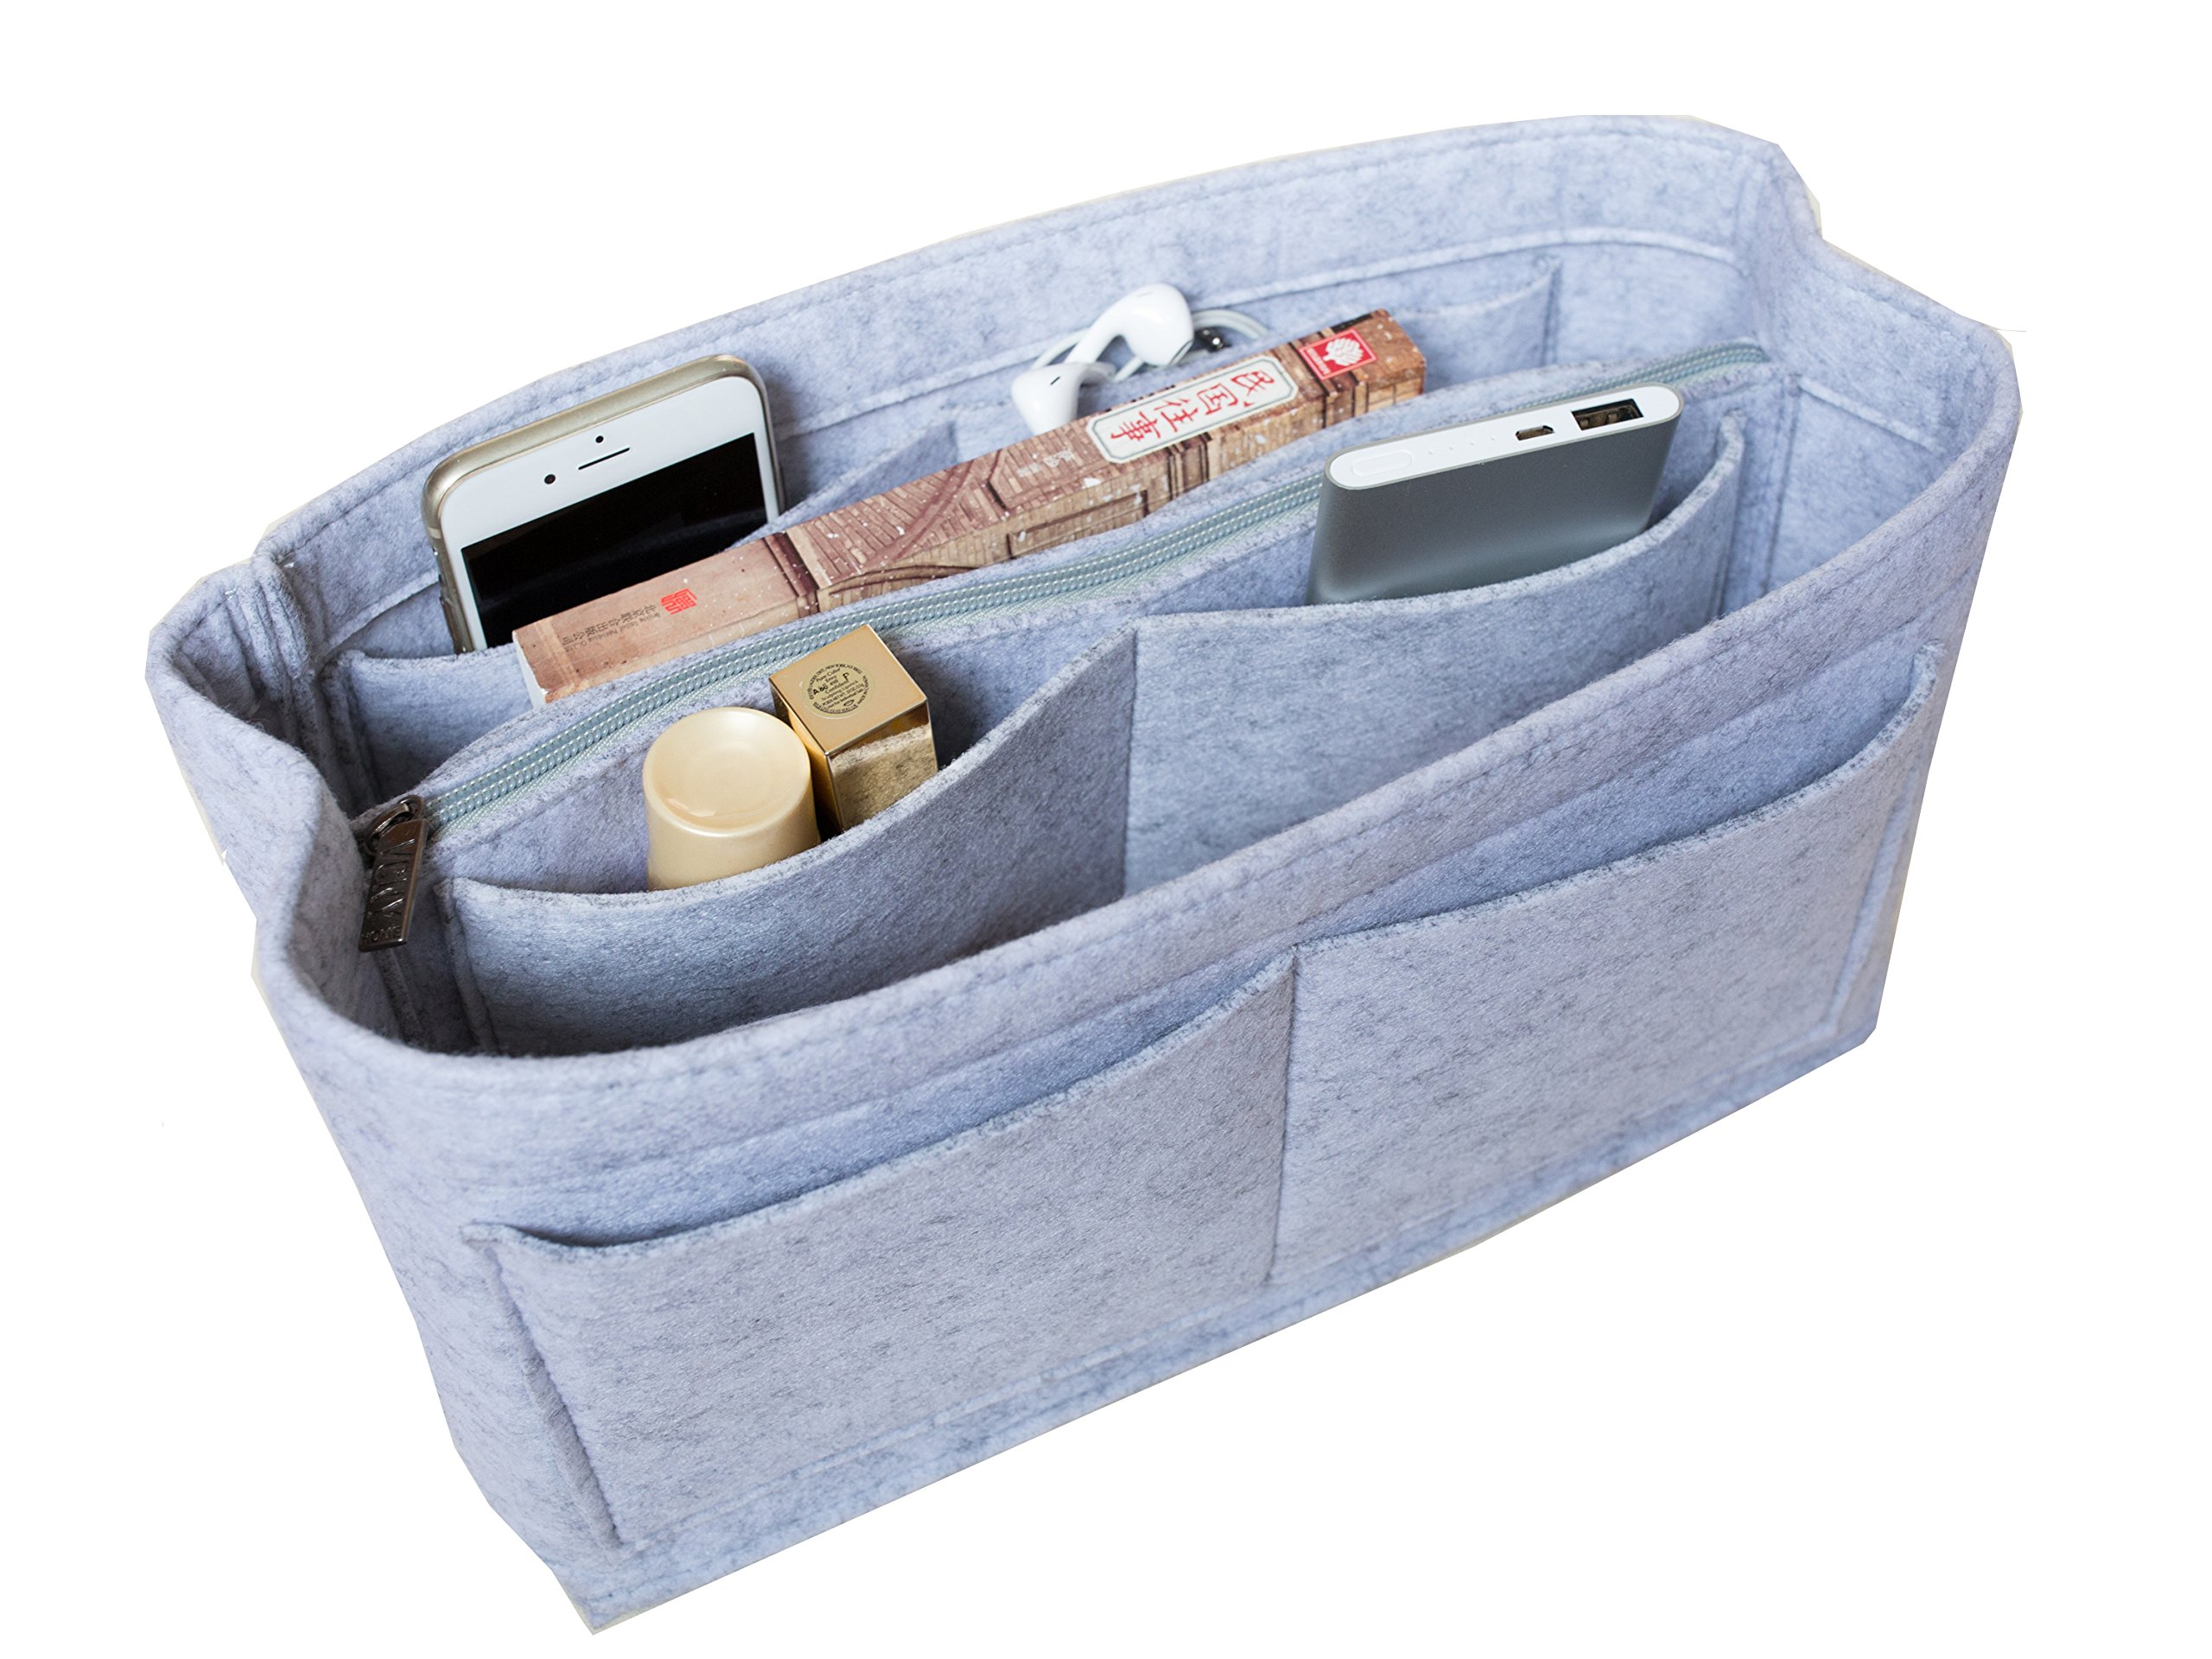 LUZEE Purse Organizer with Middle Zipper Fits Neverfull MM Speedy 30 In Bag Organizer For Handbag Tote (Light Grey)